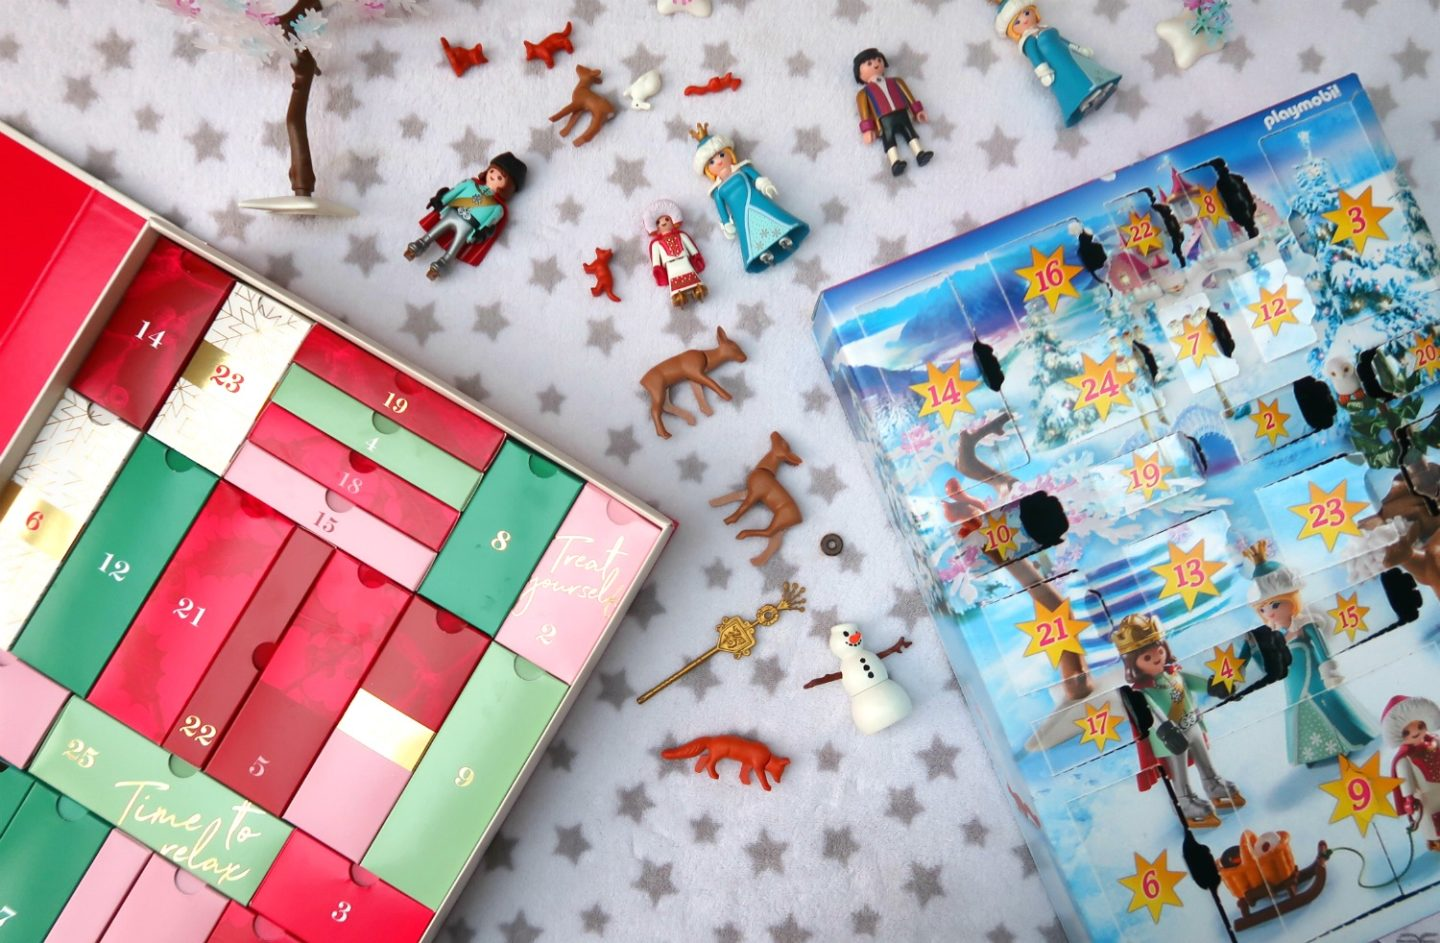 Are expensive advent calendars worth the money? We review the Playmobil advent calendar and M&S beauty advent calendars